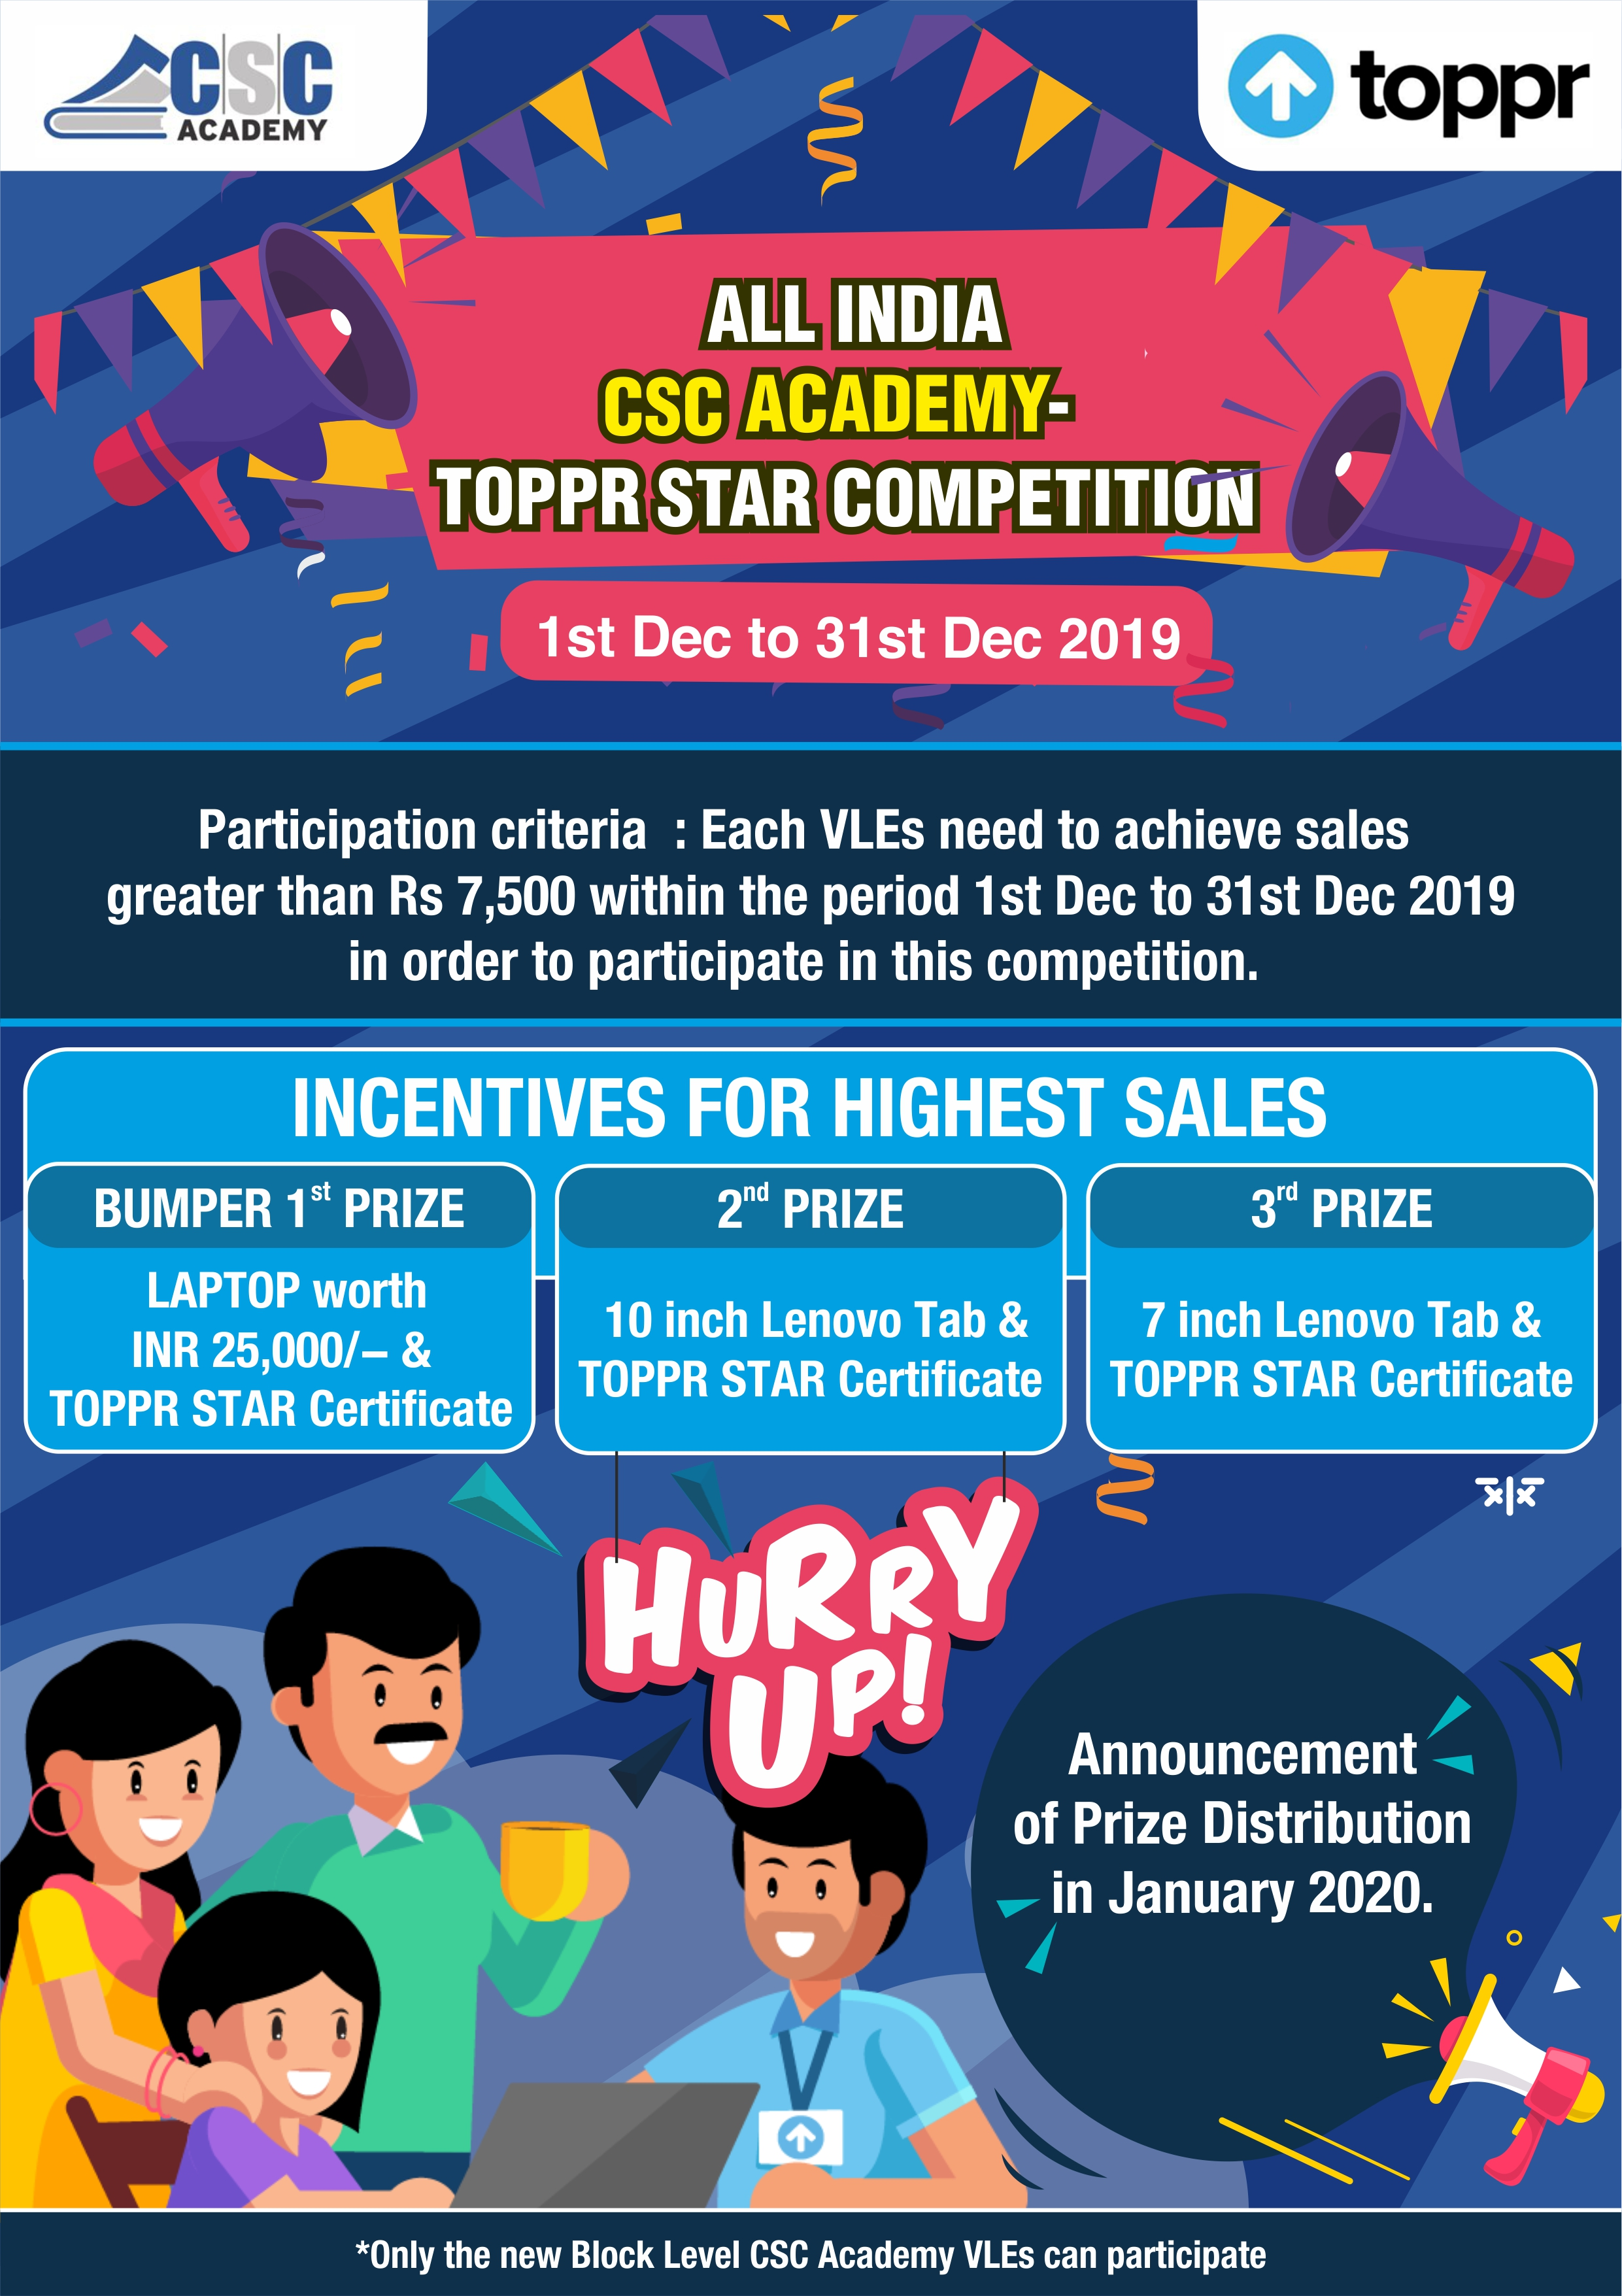 https://csc.gov.in/notification/Toppr%20Competition.jpg